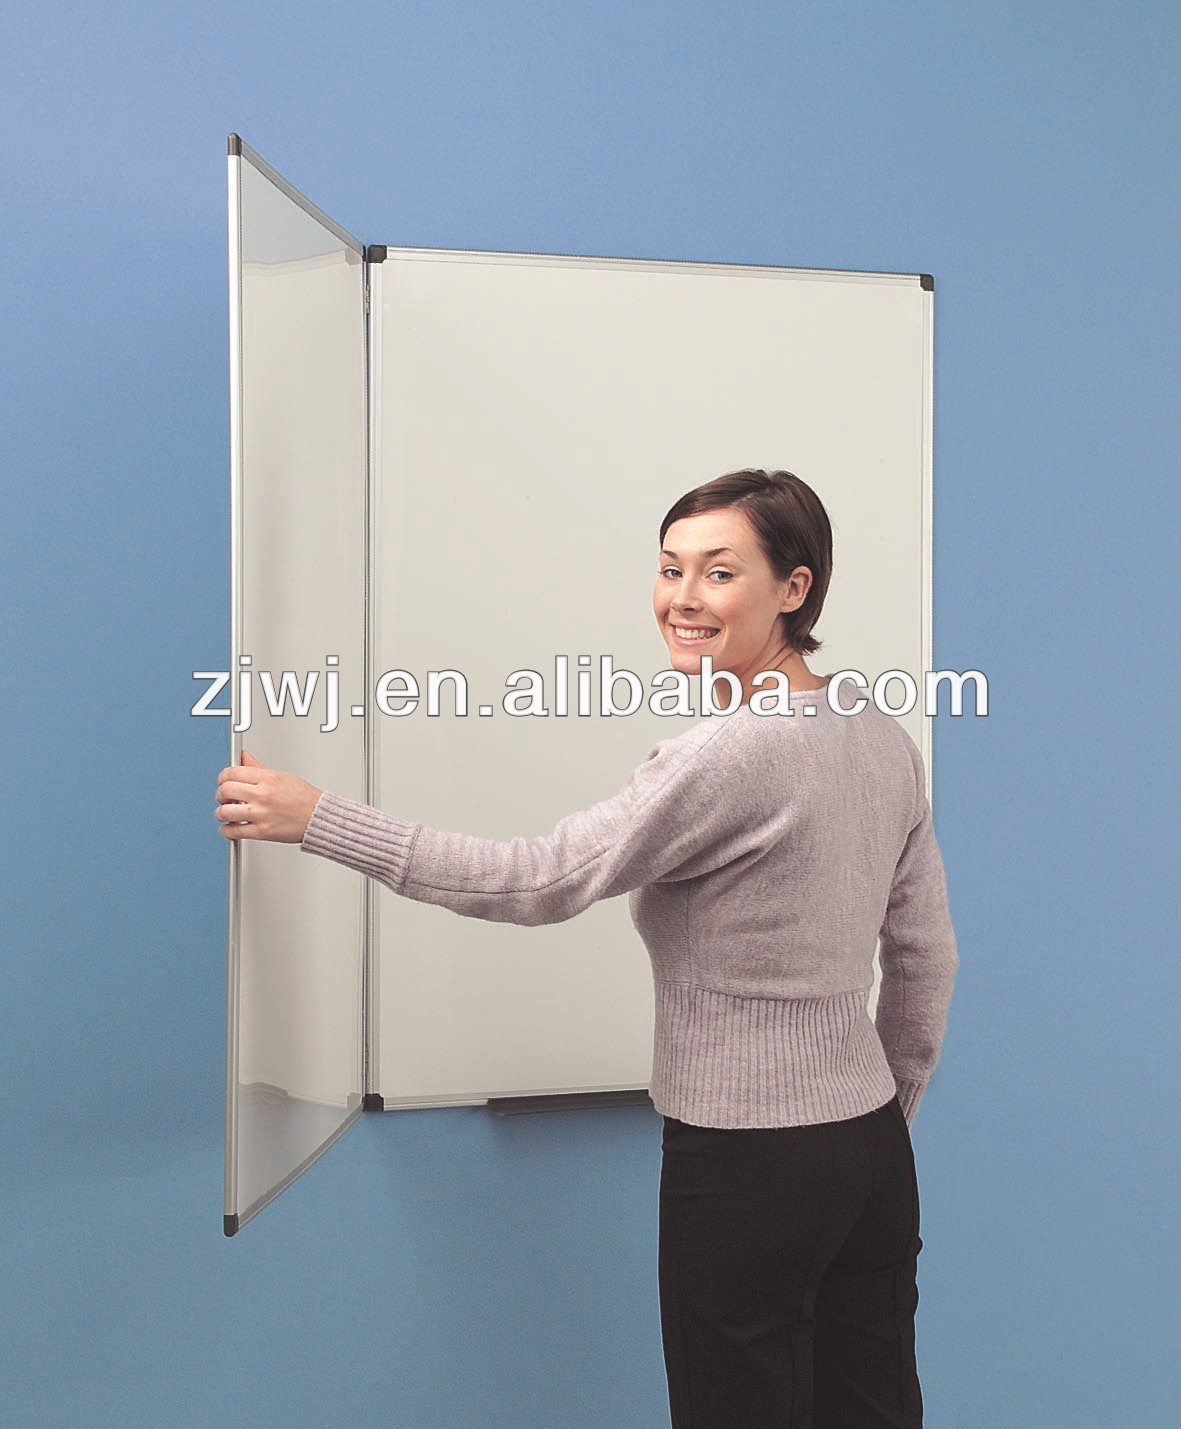 GBB-011 folding whiteboard 120x90cm 3 PANEL/folding wall mounted magnetic whiteboard